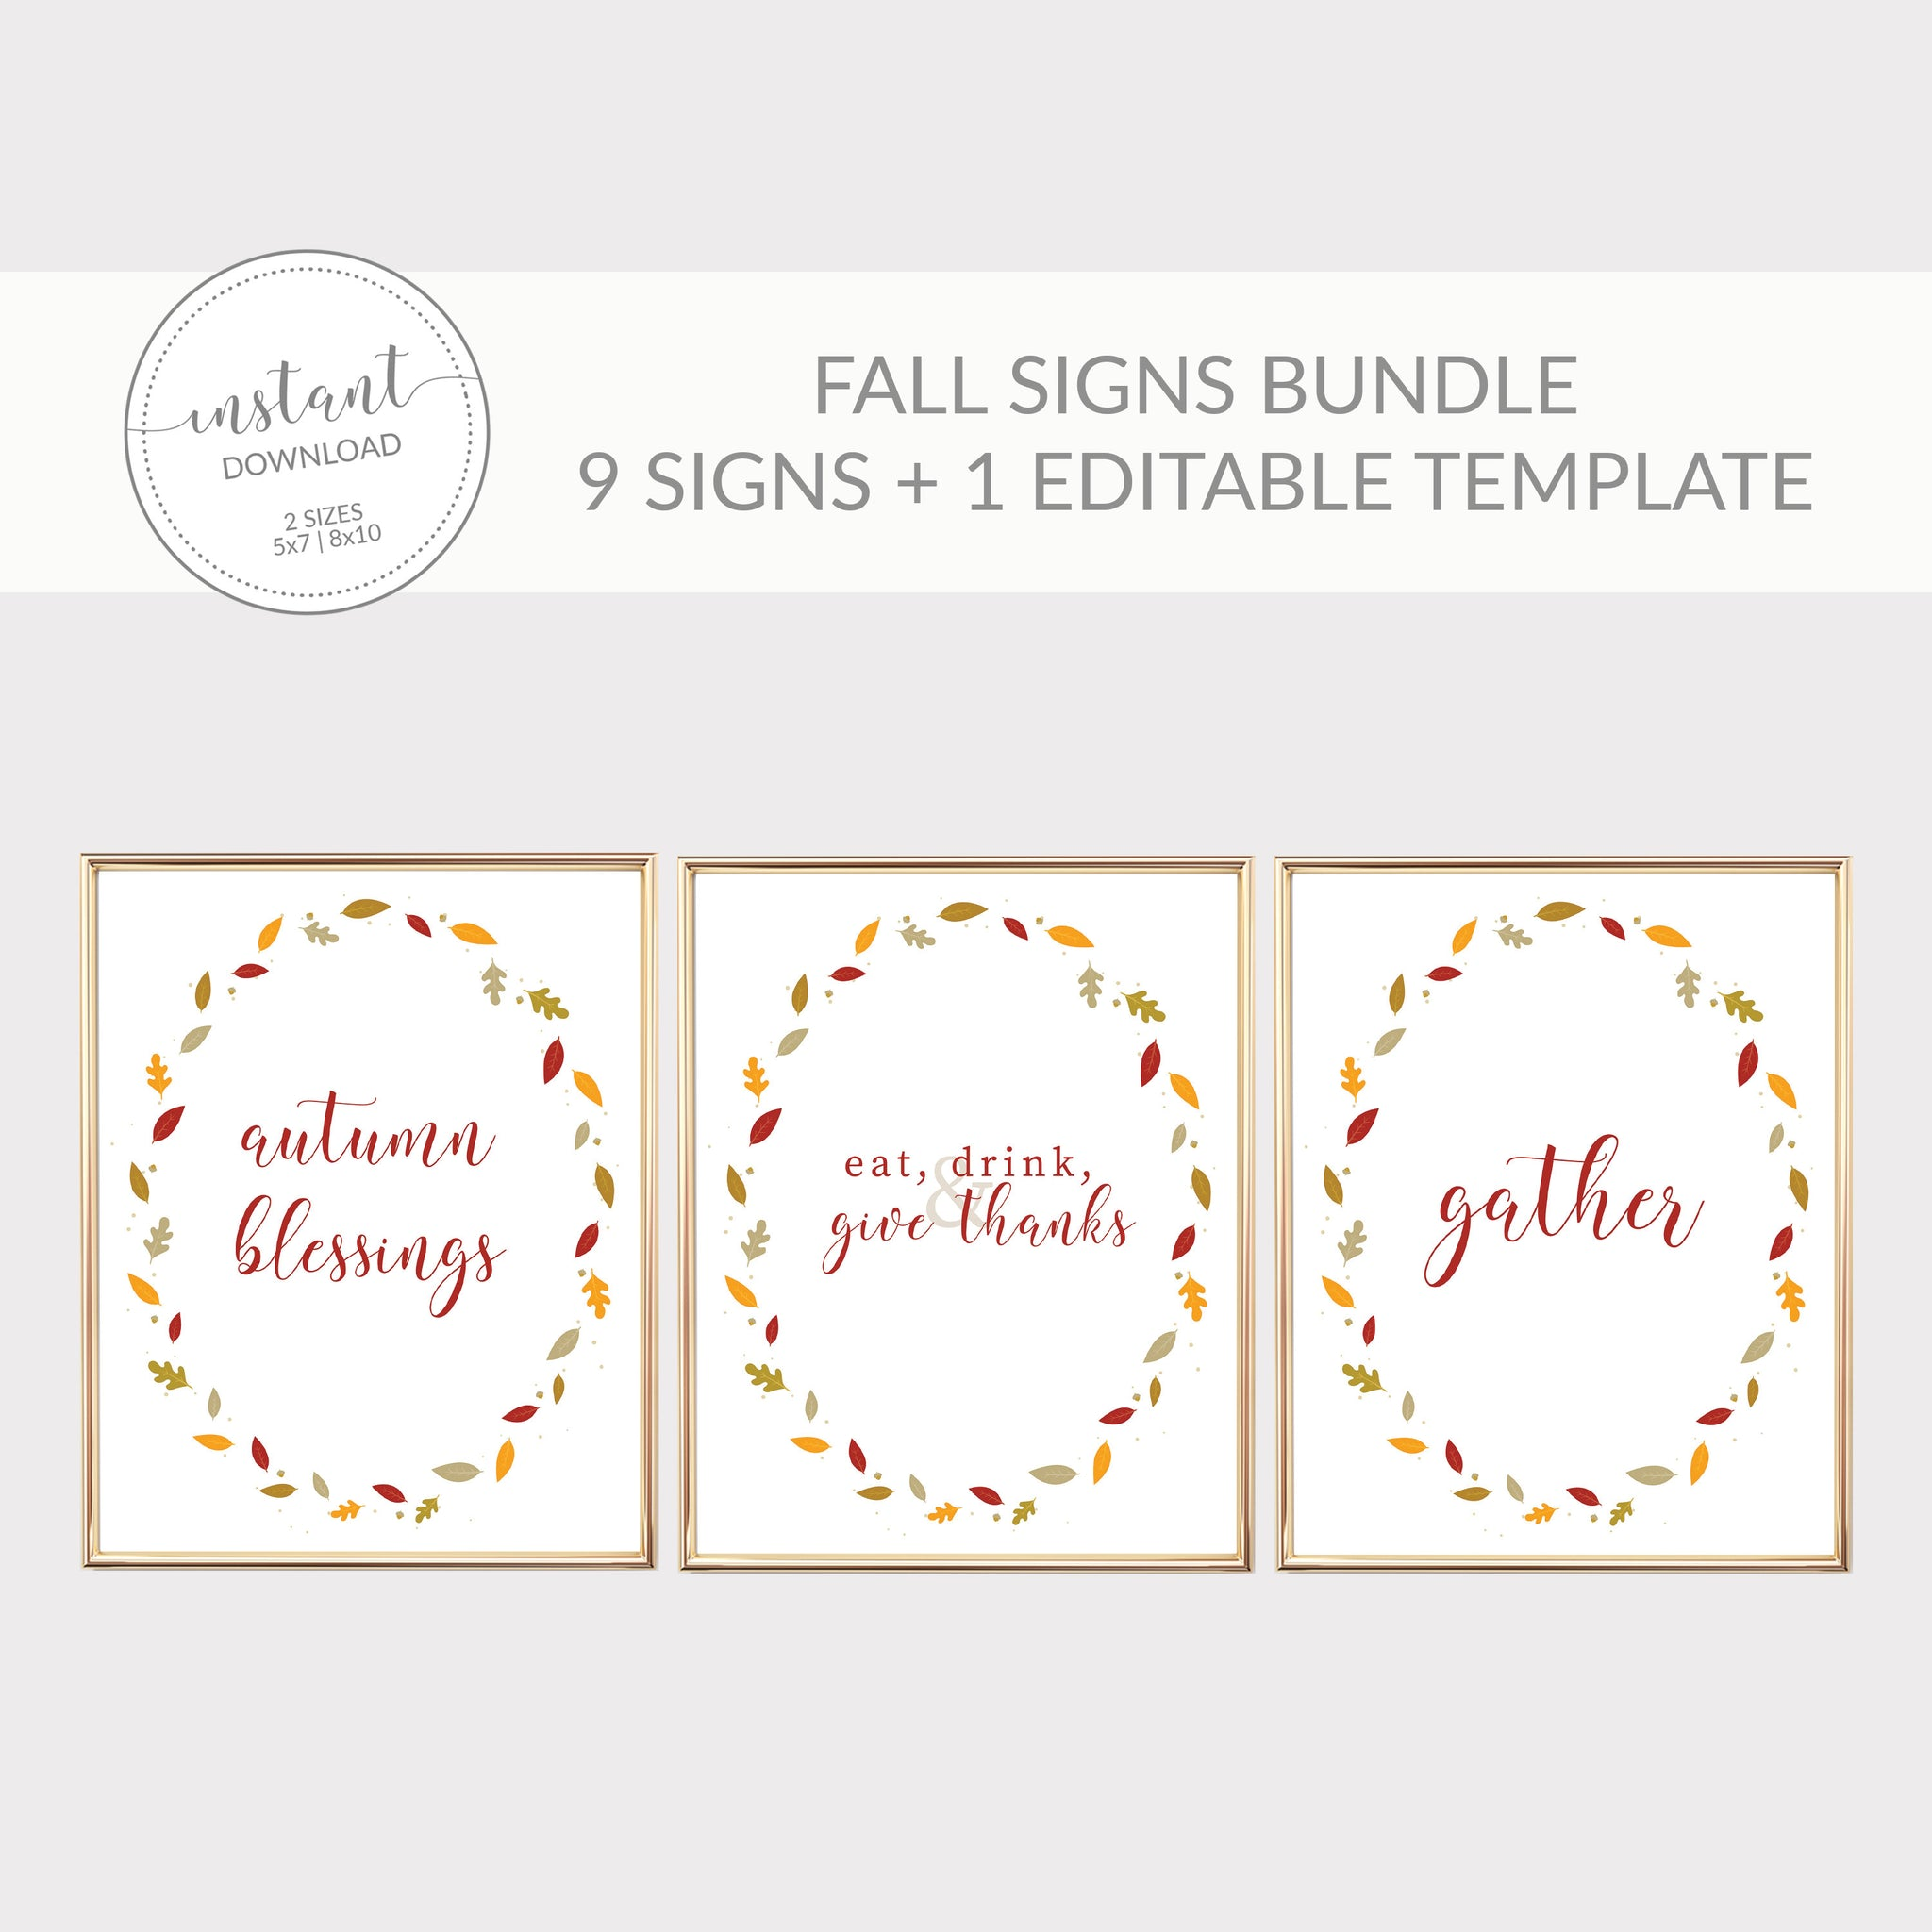 Fall Signs Bundle, Fall Decor Leaves, Thanksgiving Printable Art, Fall Office Decor, Fall Editable Sign, INSTANT DOWNLOAD - FL100 - @PlumPolkaDot